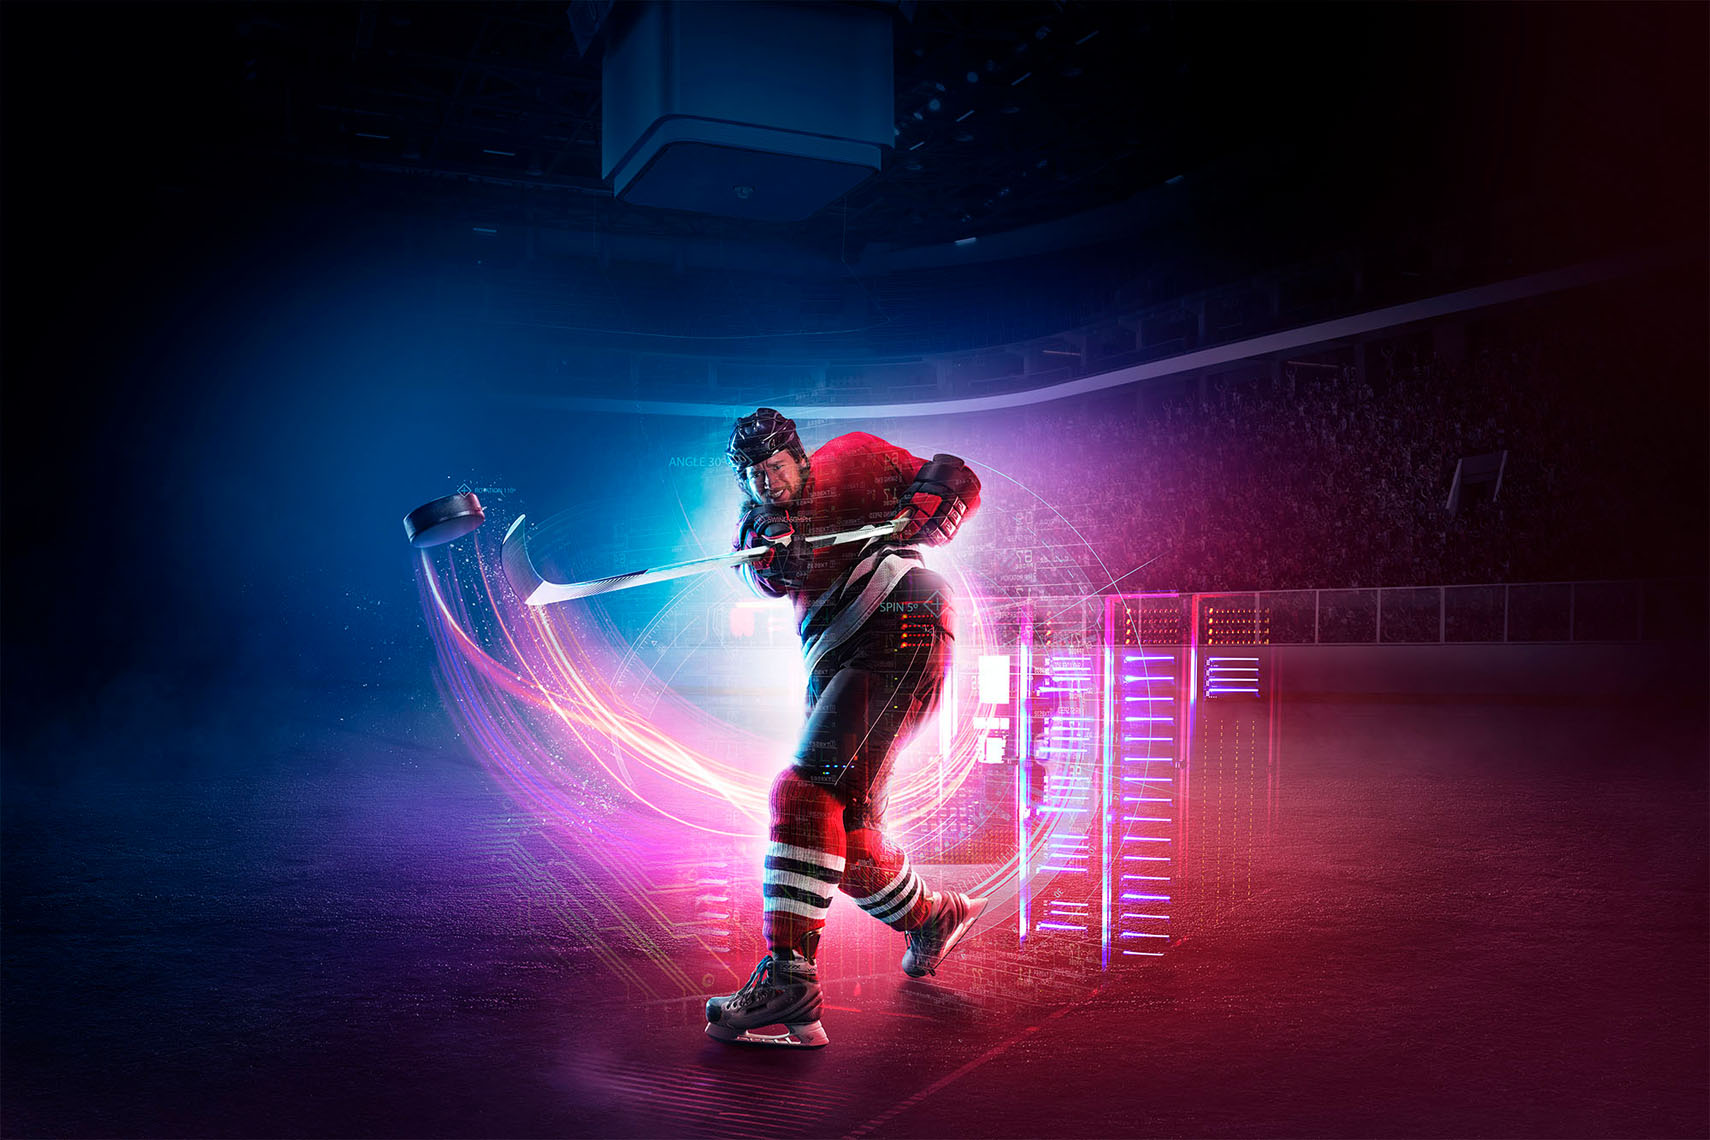 Manipula Retouching, CGI, photography.  Retouching artist, cgi artist, automotive retoucher.veberage retoucher.  002_Manipula_0590_Intel_Hockey_01